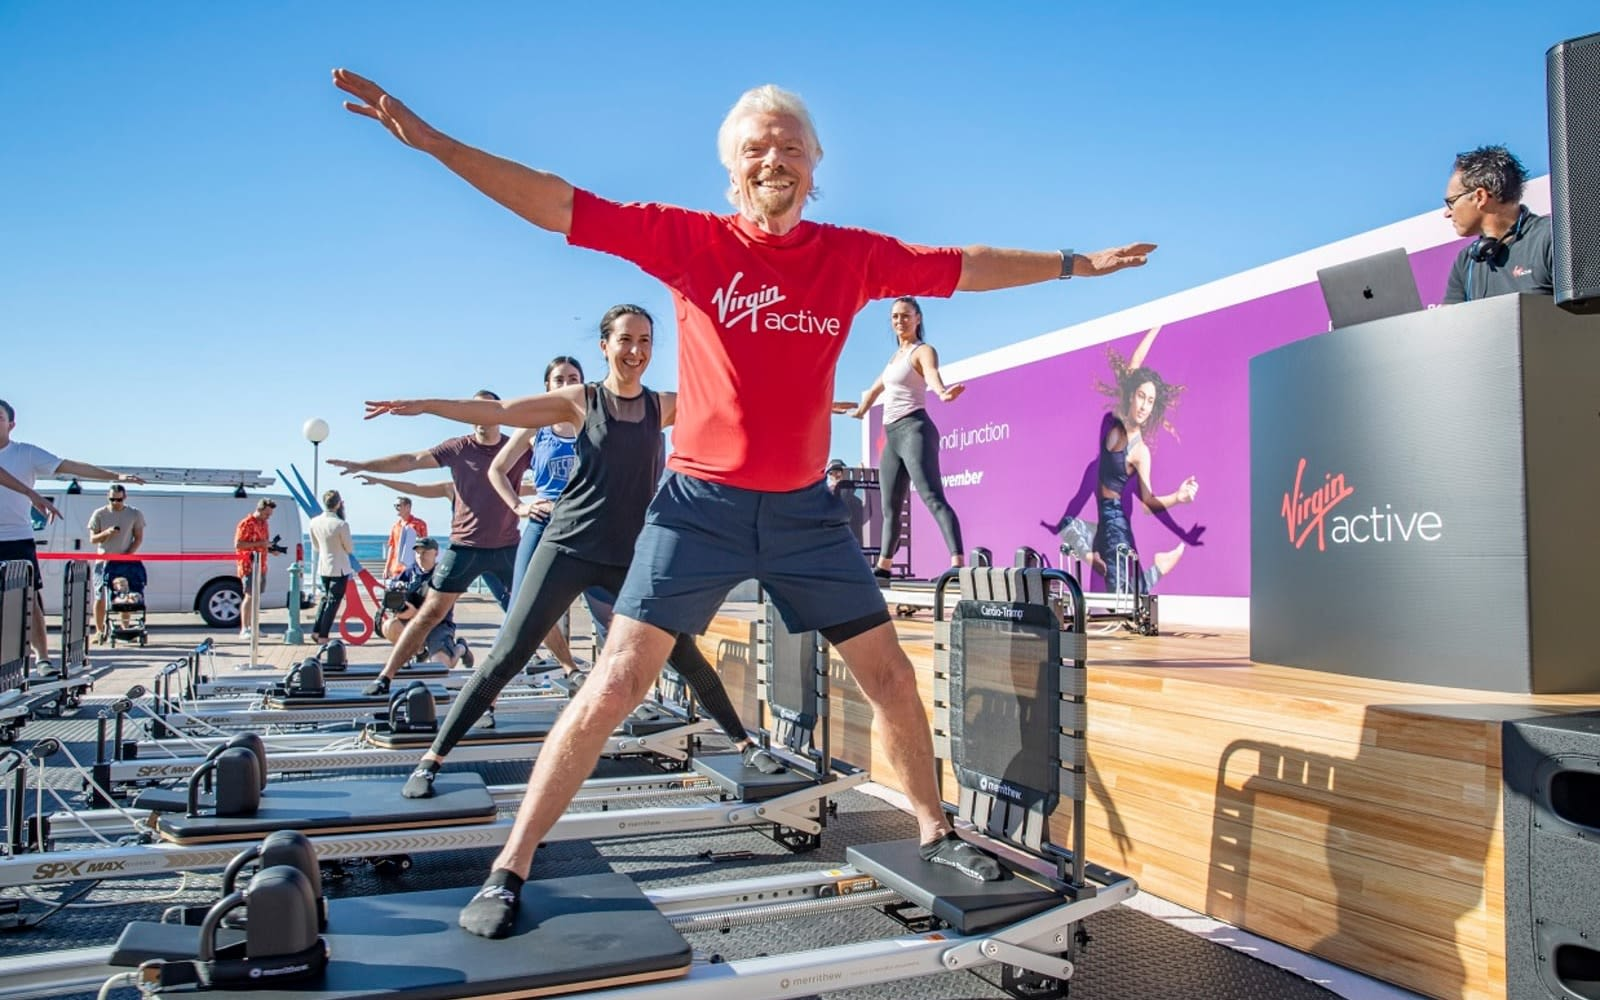 Image from Virgin Active Australia